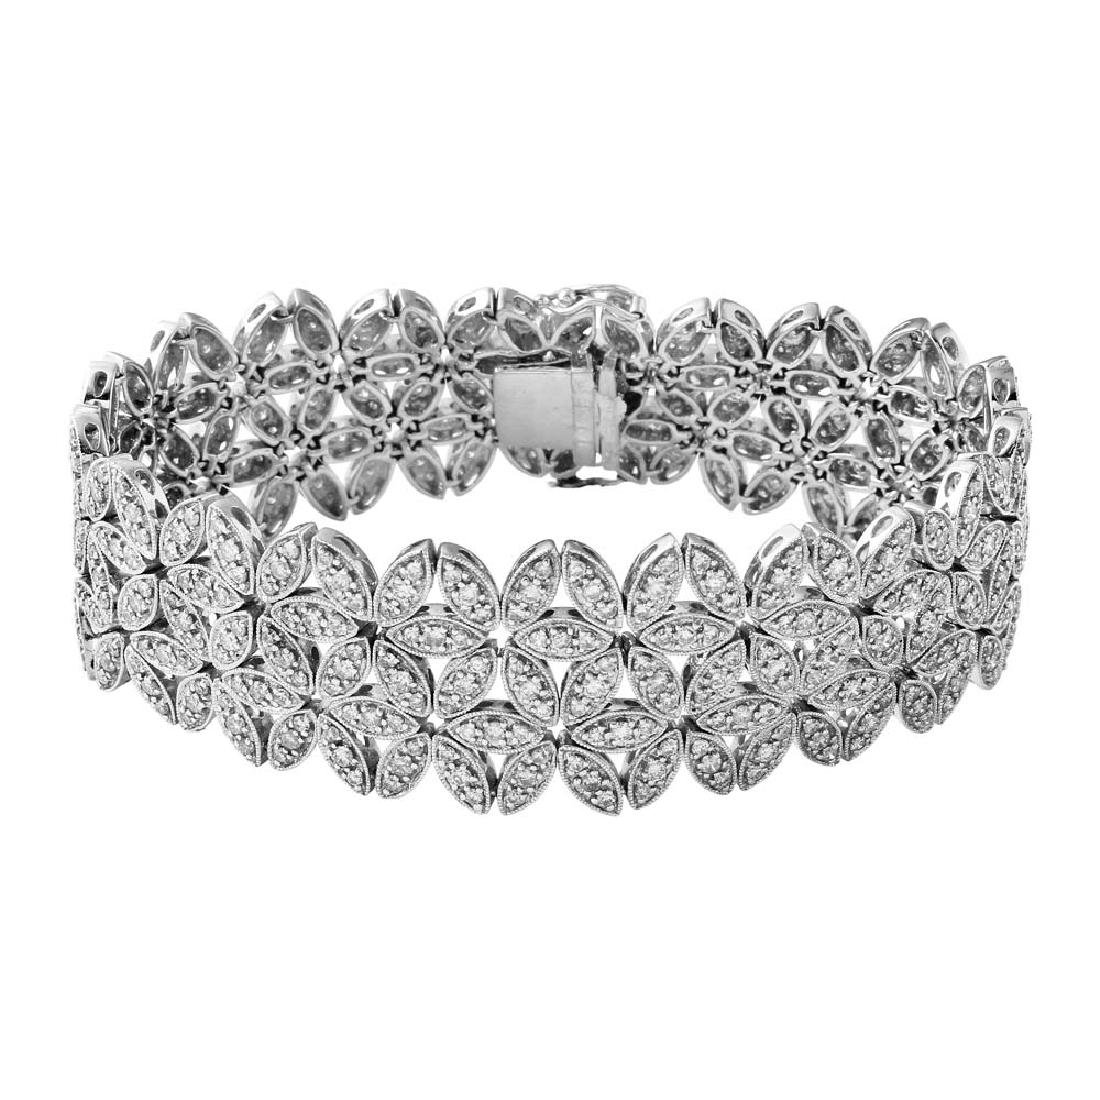 Genuine 6.23 TCW 14K White Gold Ladies Bracelet